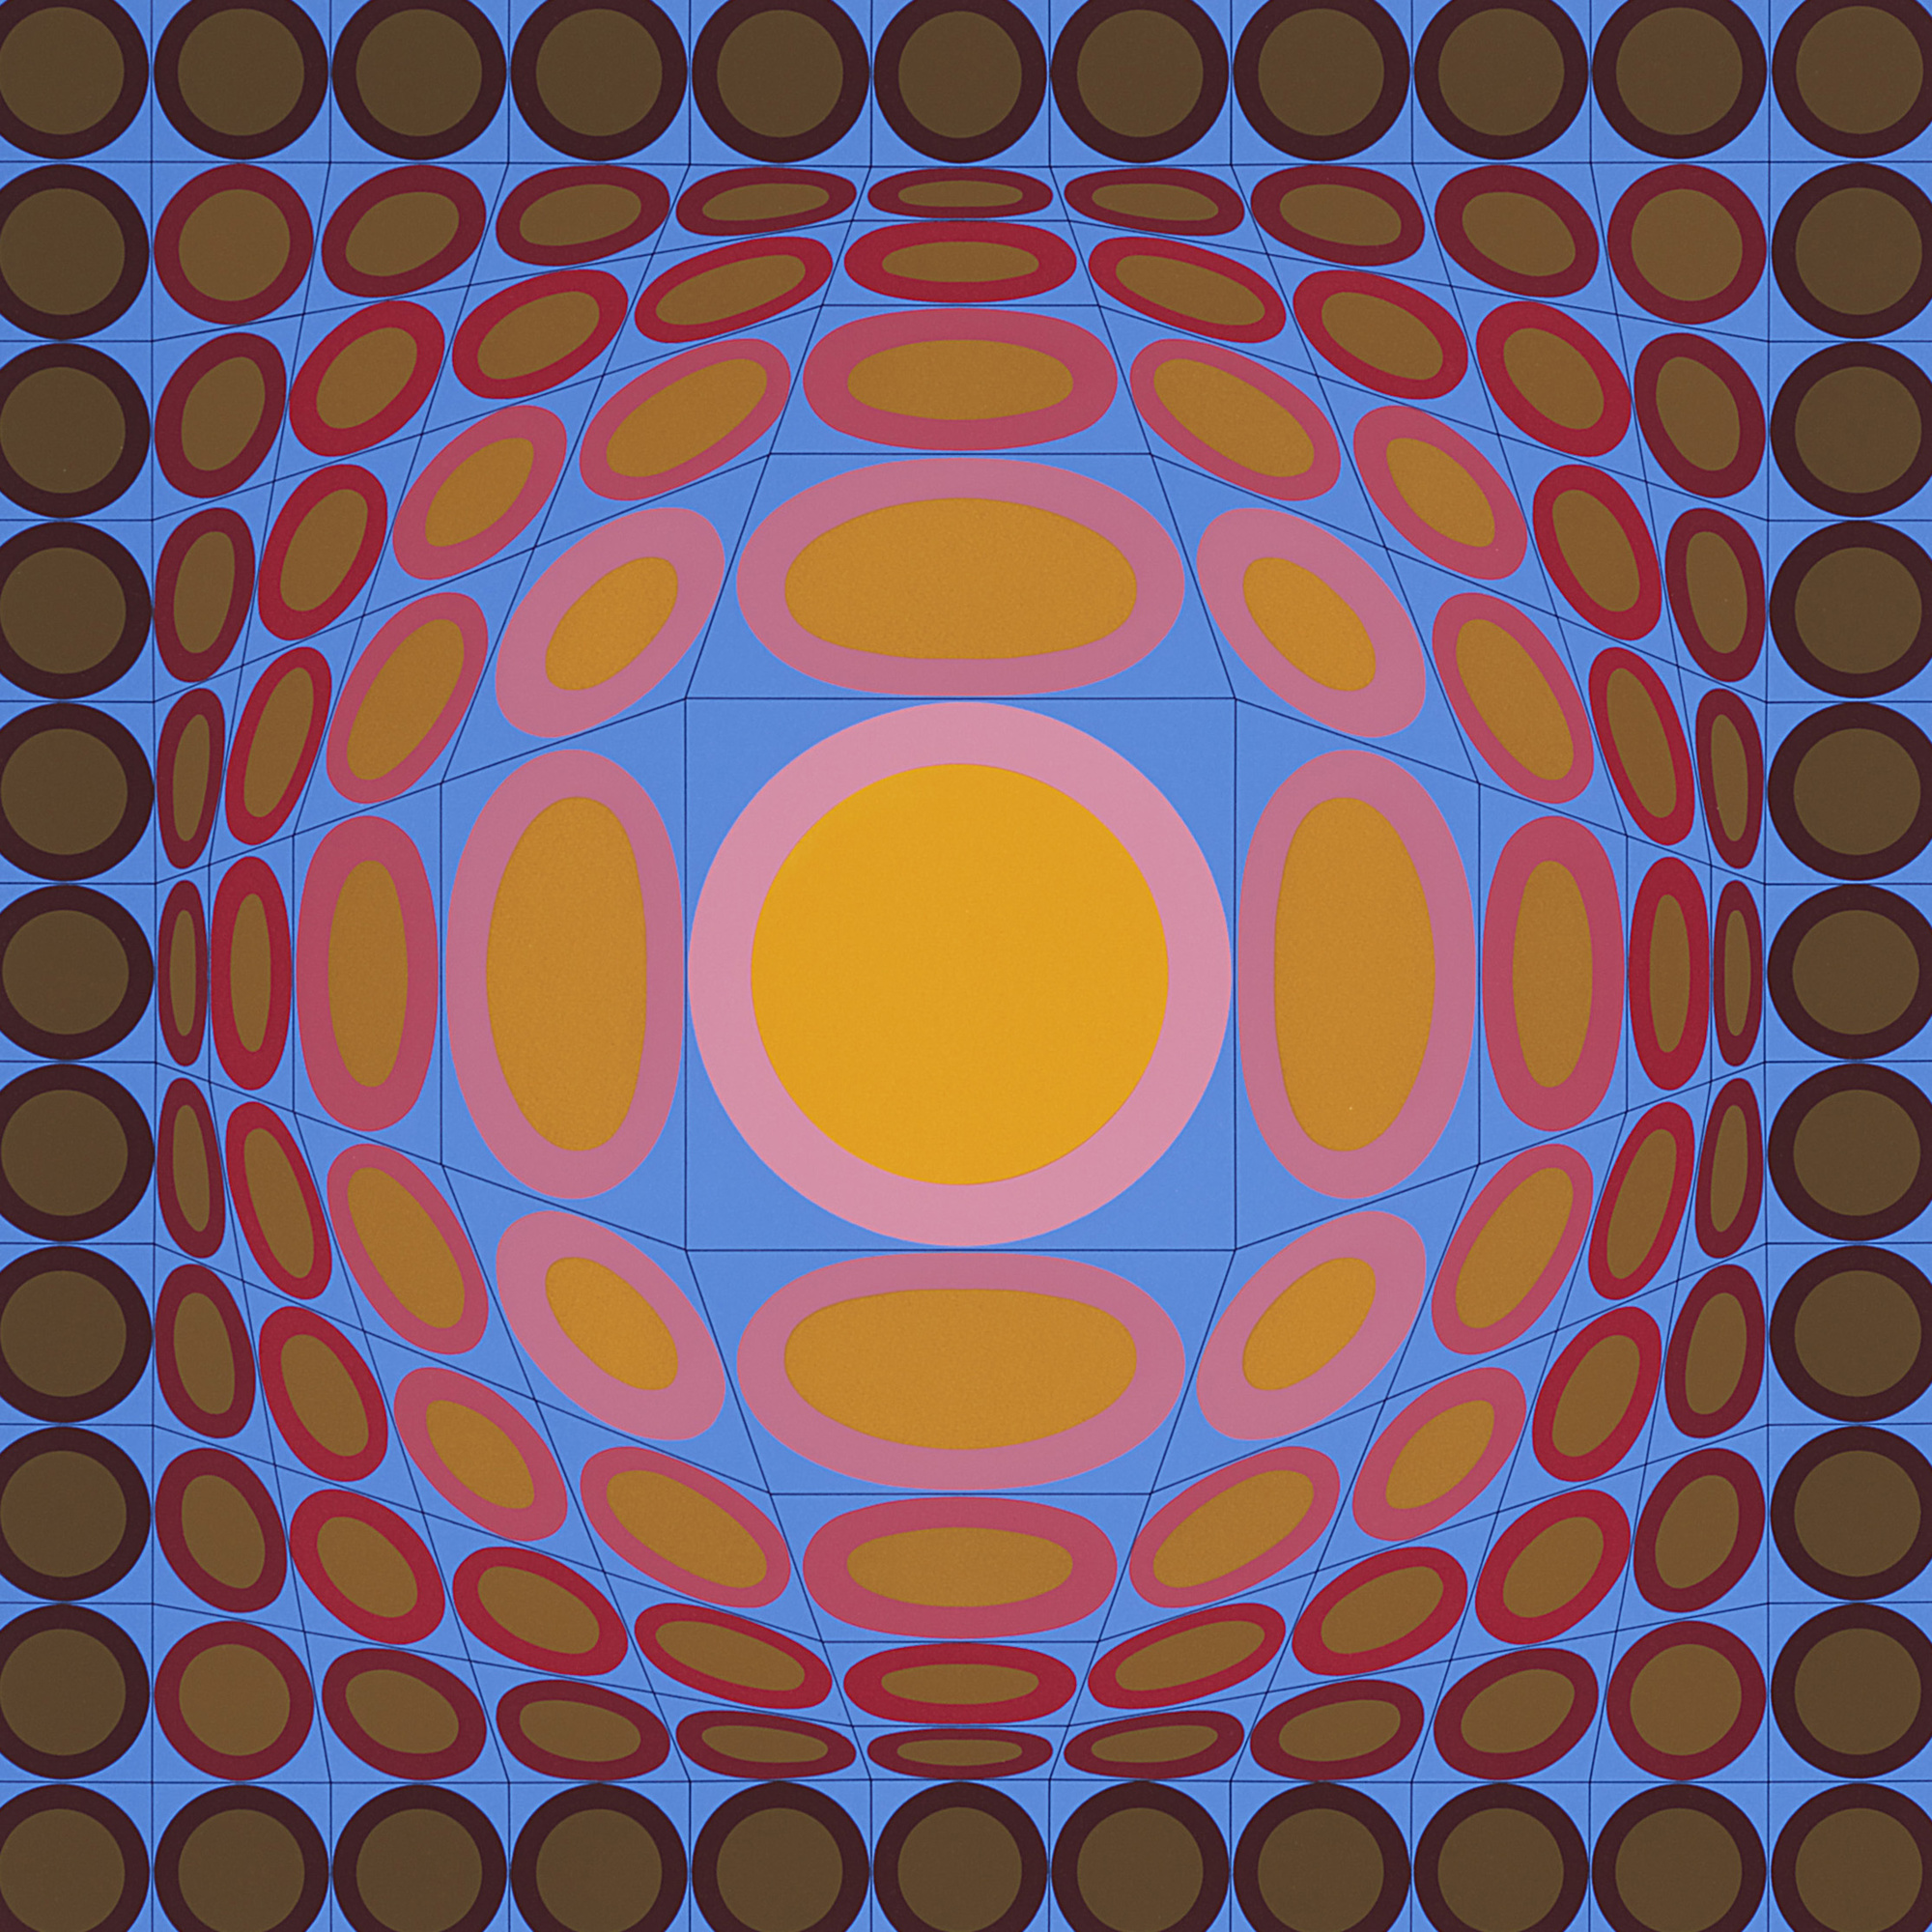 105: Victor Vasarely / Tri-Vega (2 of 2)